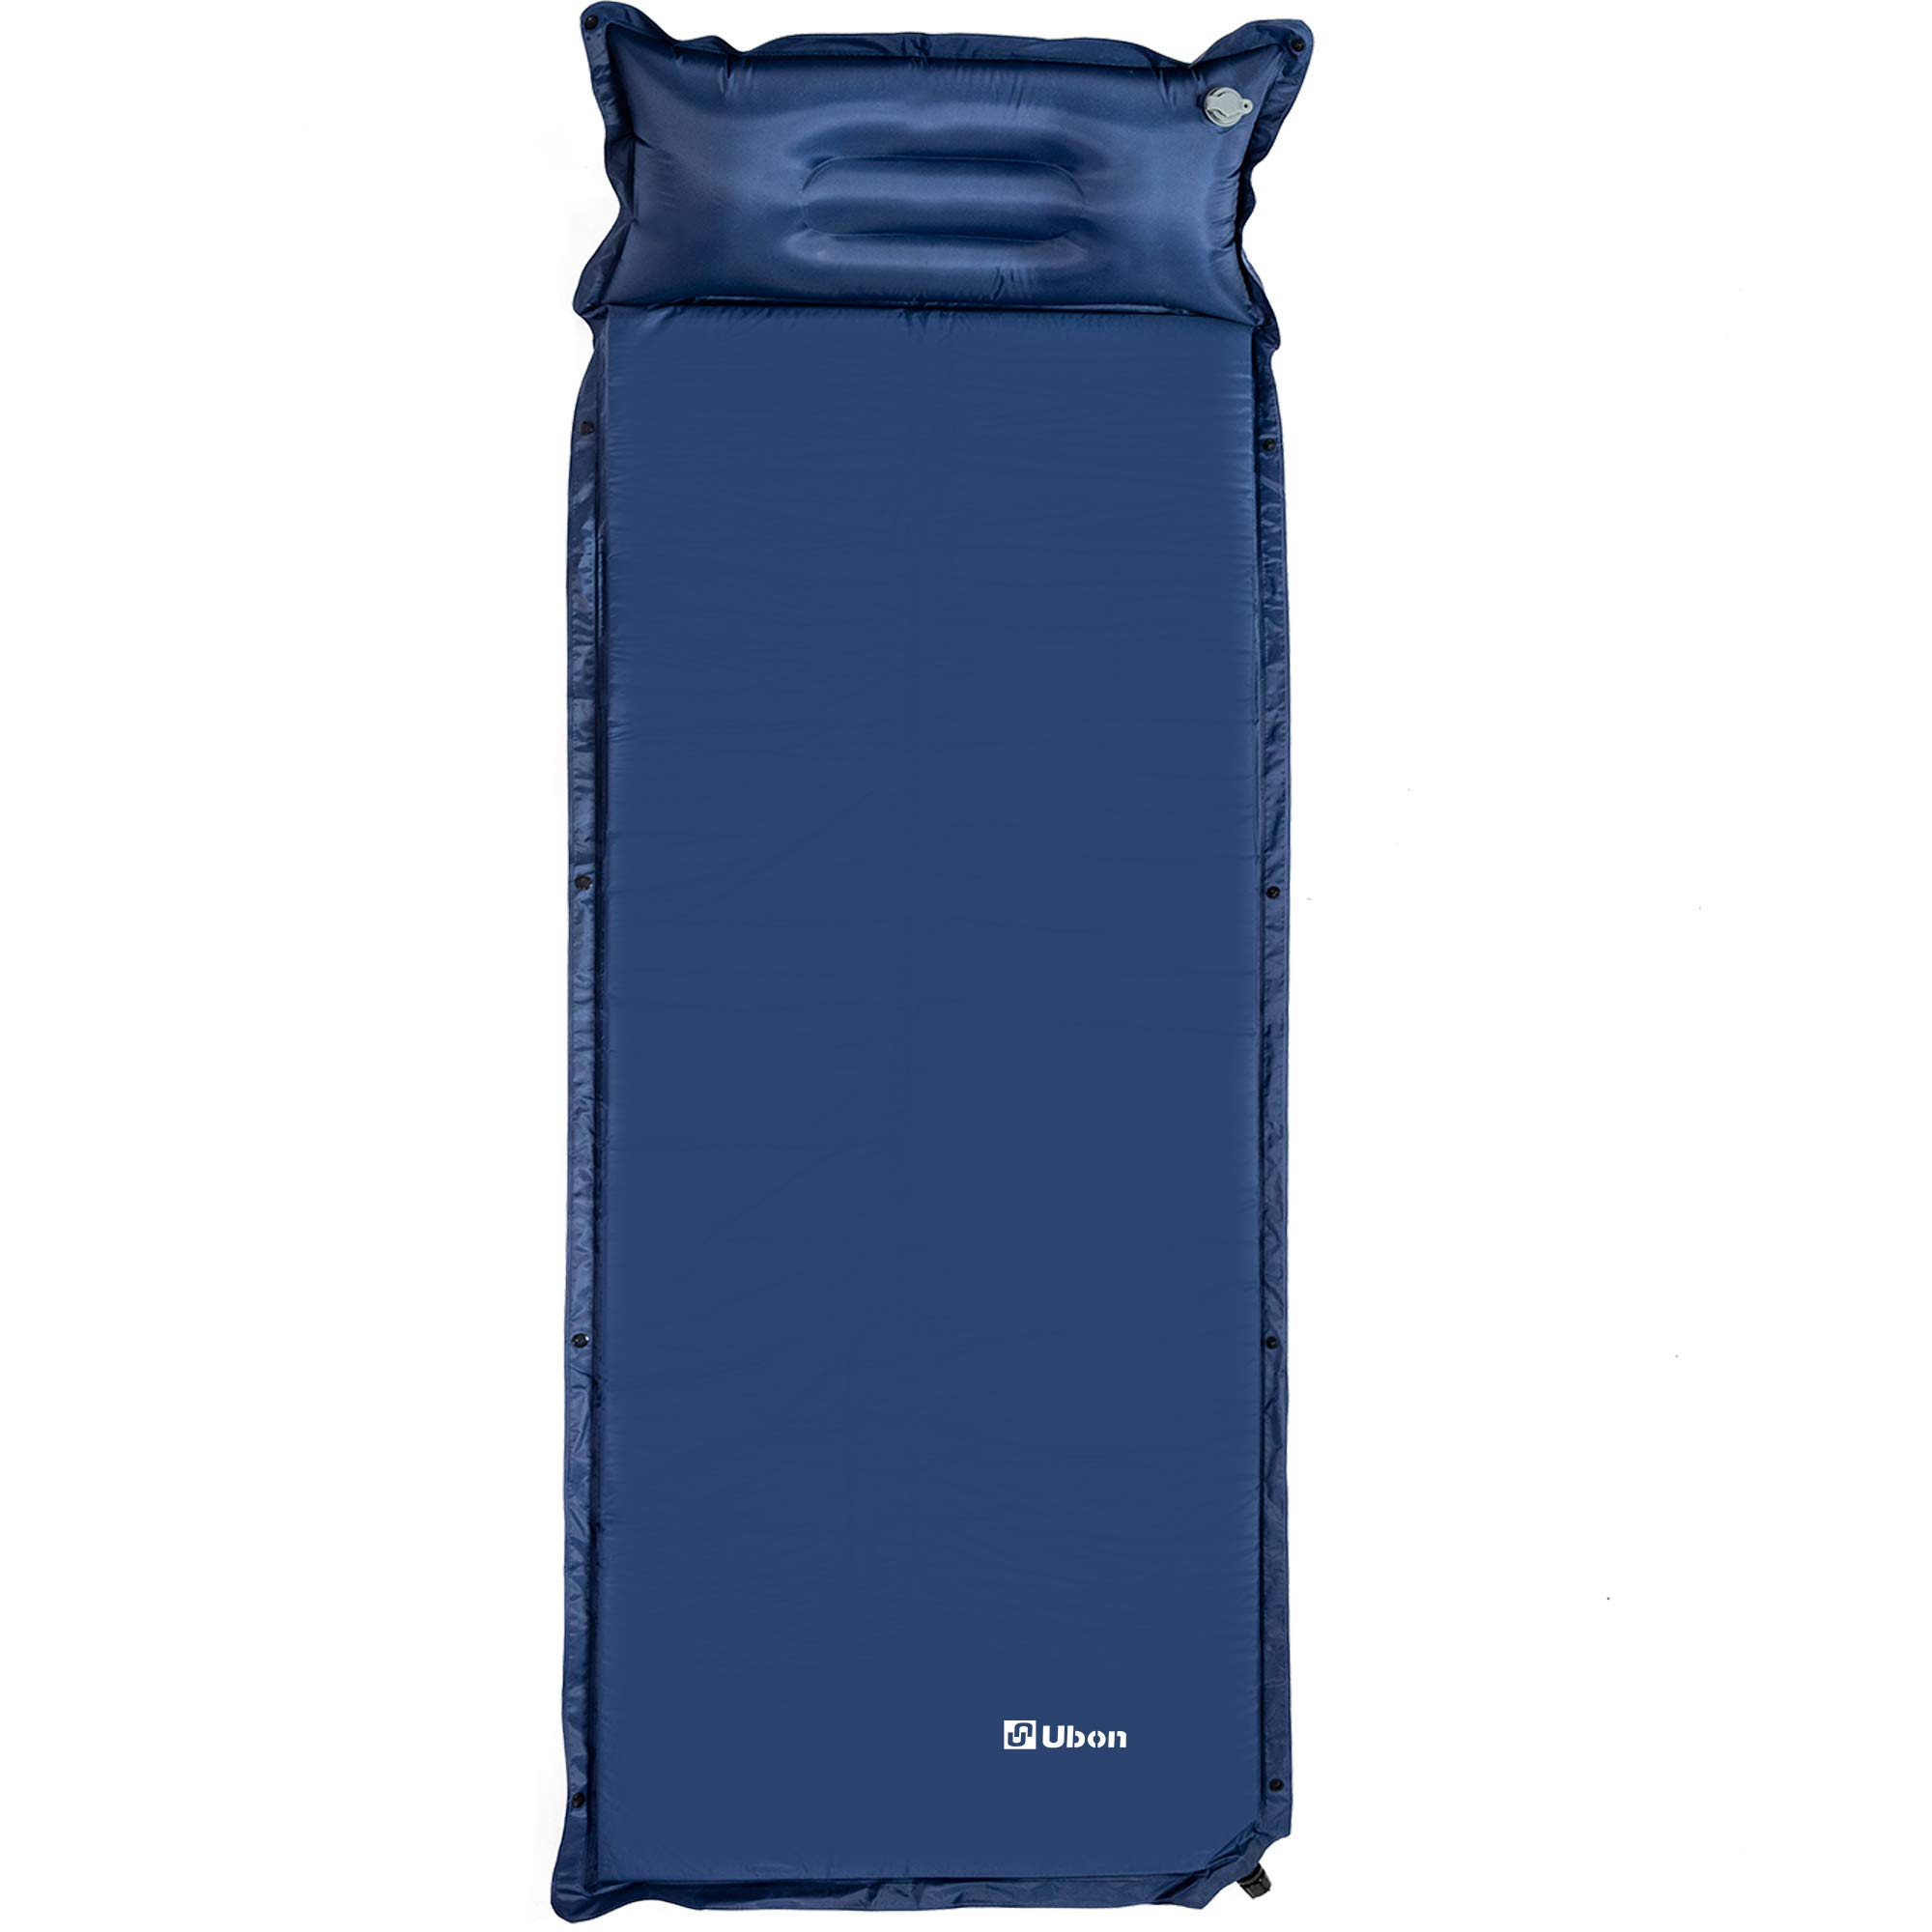 Ubon Self-Inflating Sleeping Pad Attach Pillows Comfortable Mattress for Camping Hiking Backpacking Beach for 1 Person by Ubon